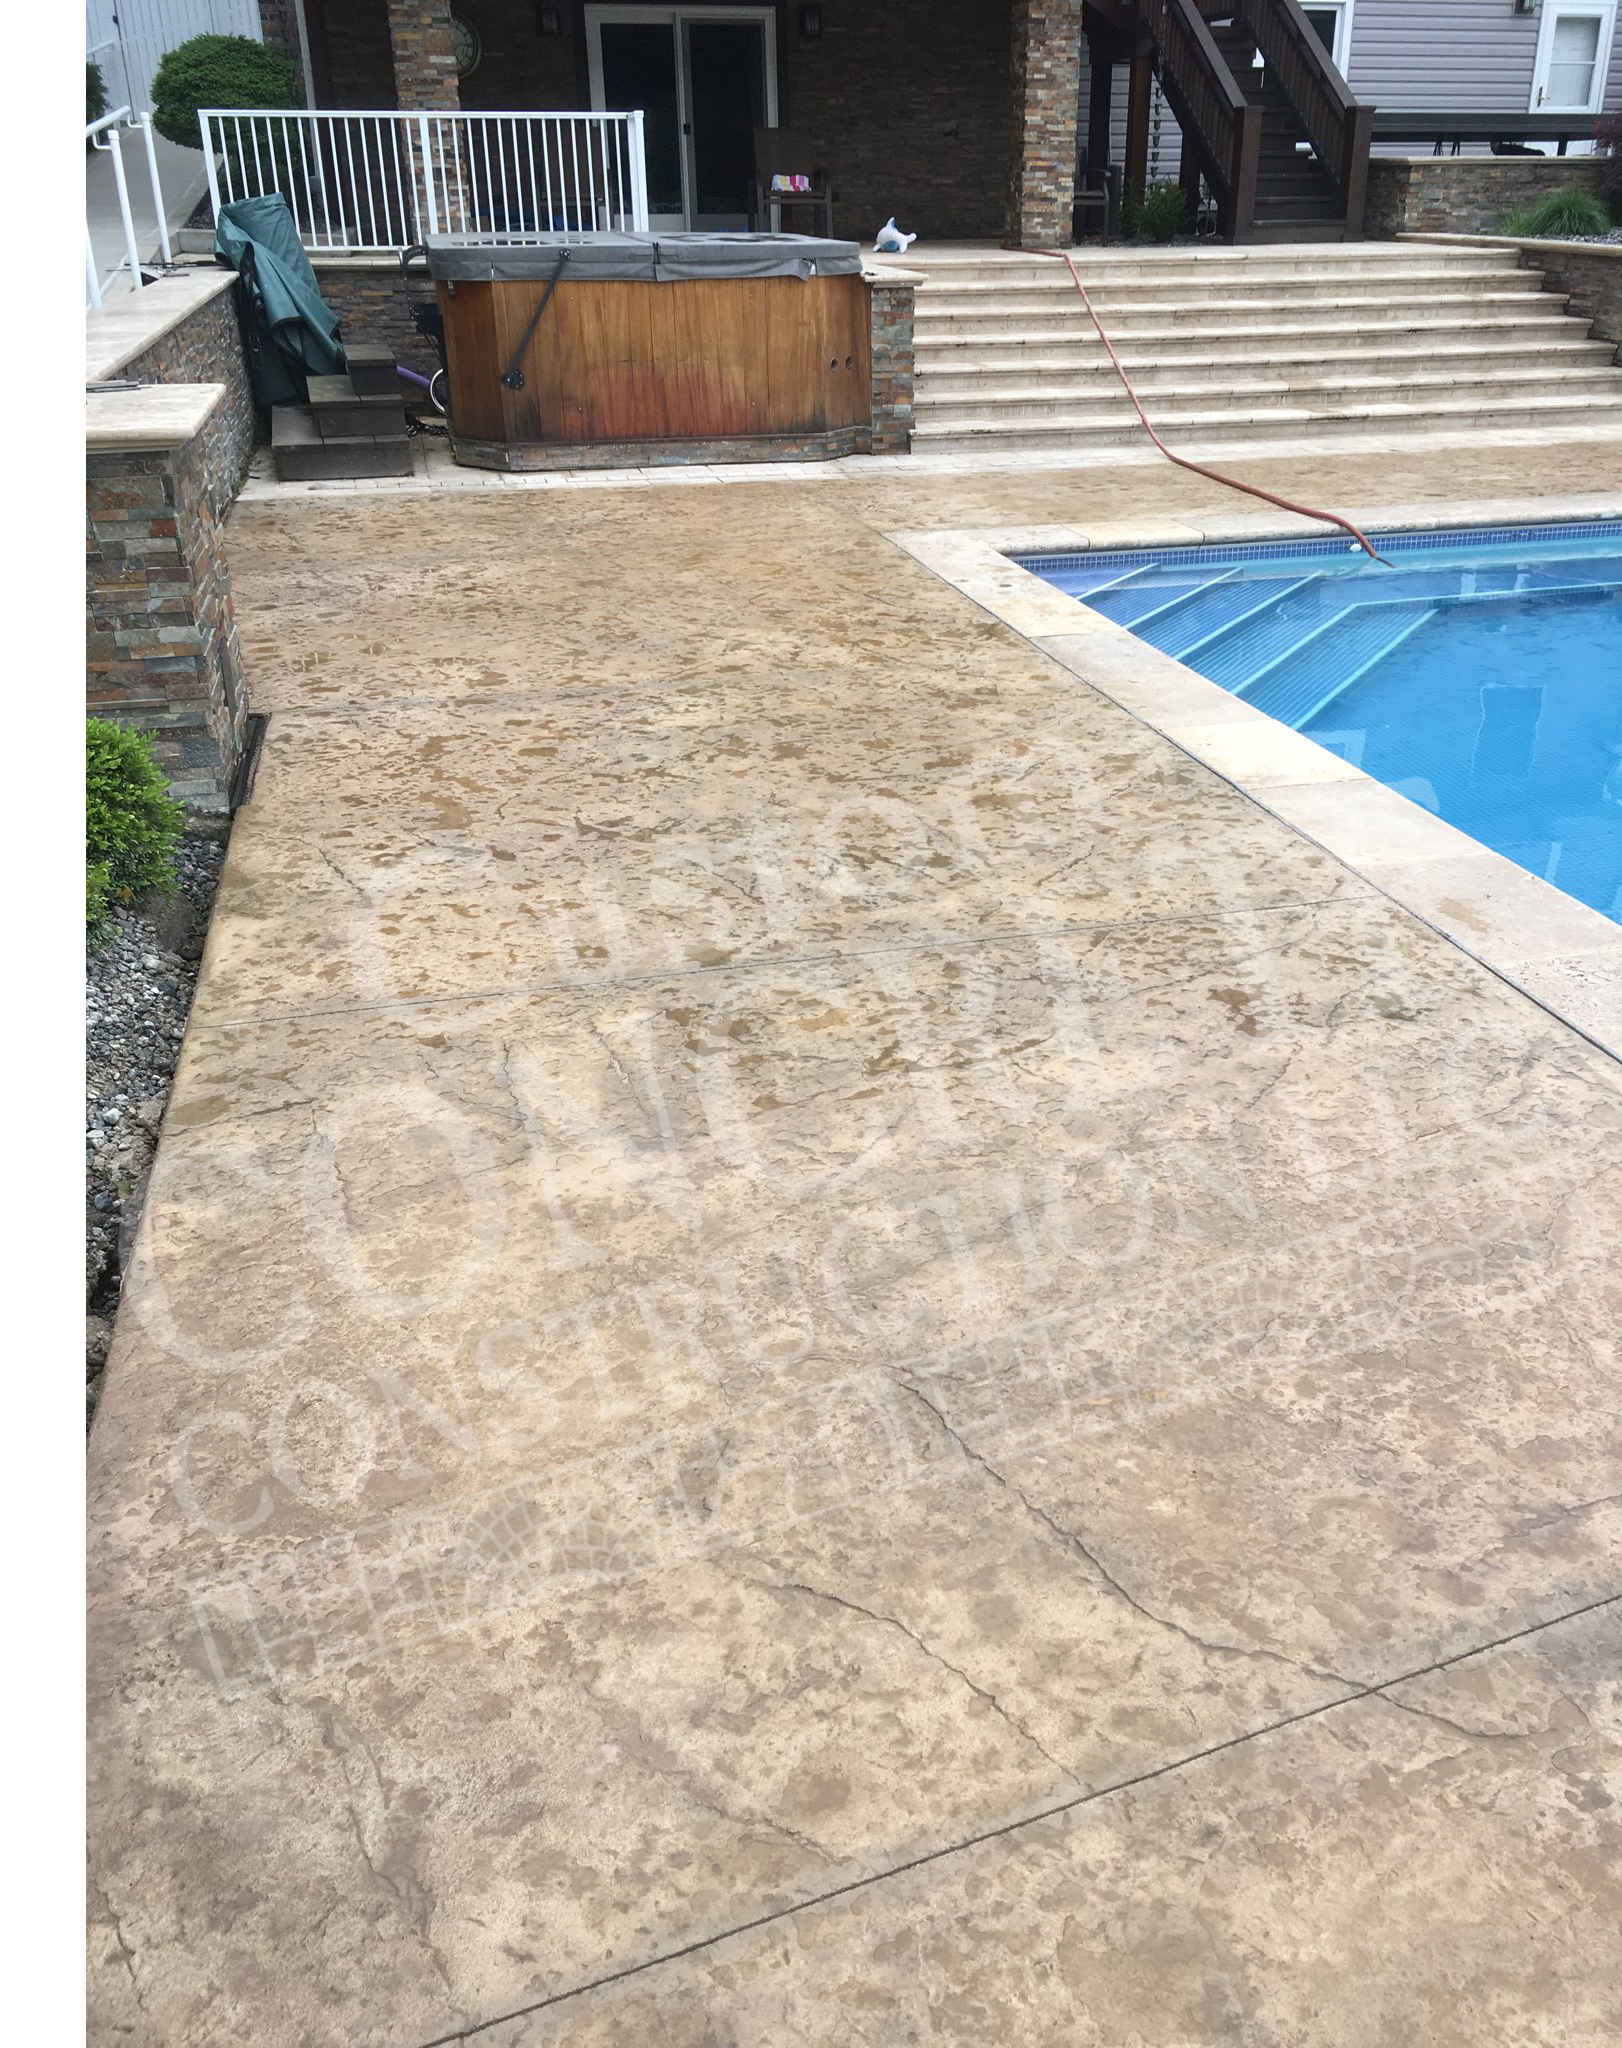 Textured Stamped Pool Deck completed at a Youngstown home